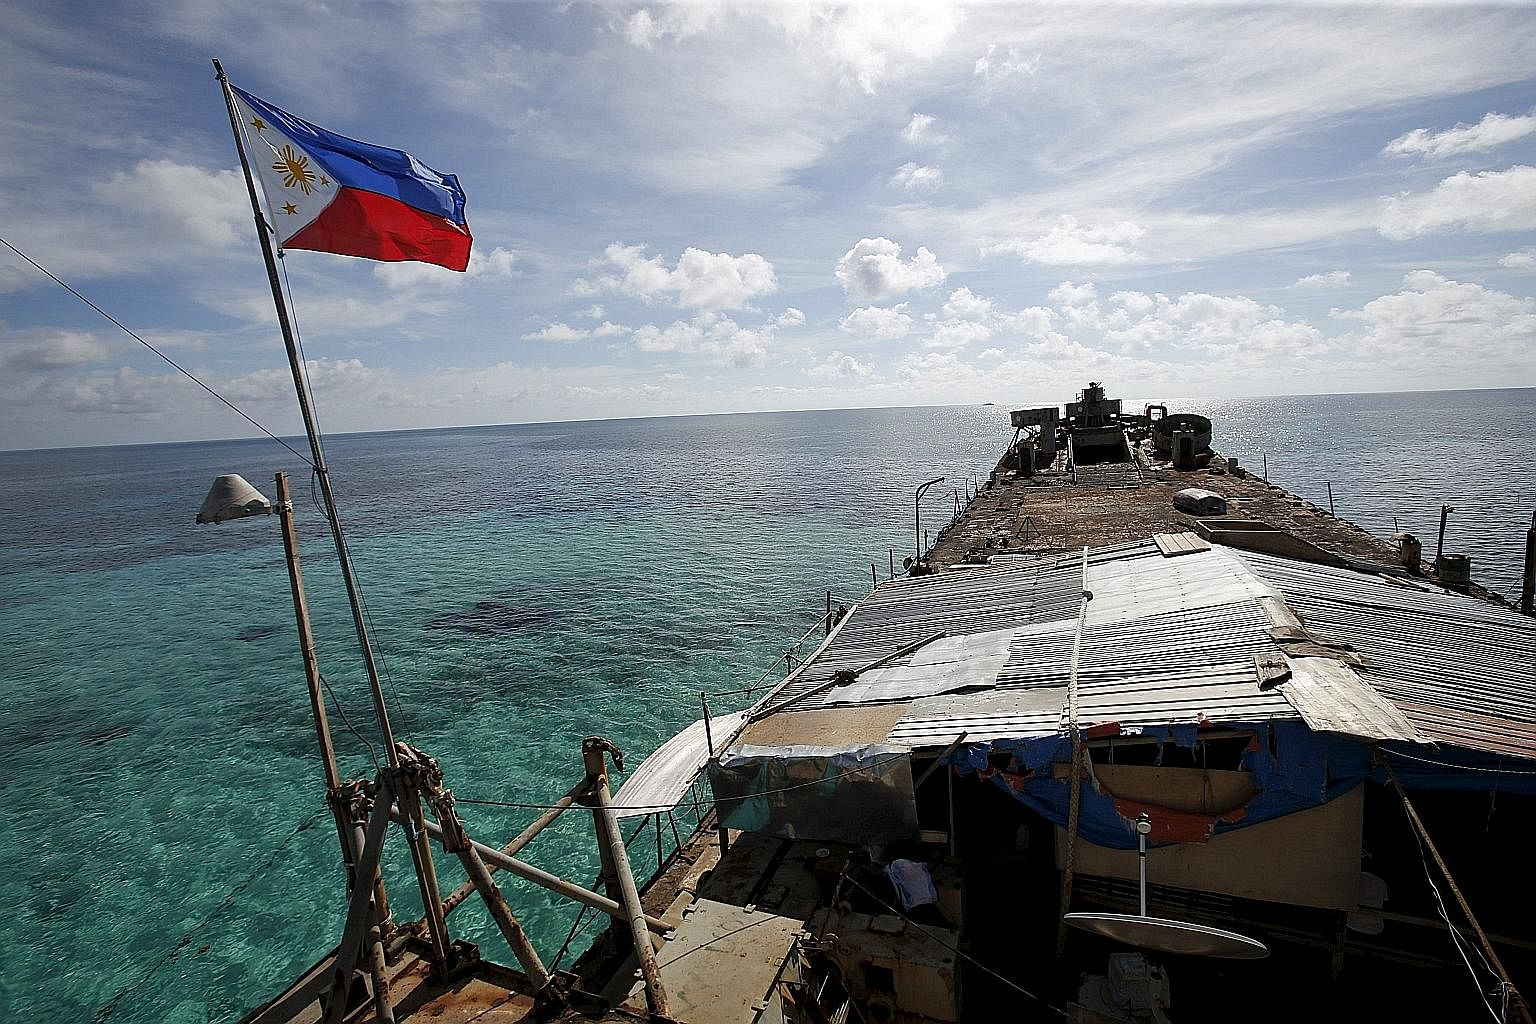 """The BRP Sierra Madre, a Philippine Navy ship that has been aground on the disputed Second Thomas Shoal, part of the Spratly Islands, since 1999. One analyst says China may seek to """"punish"""" the Philippines after the Permanent Court of Arbitration's ru"""